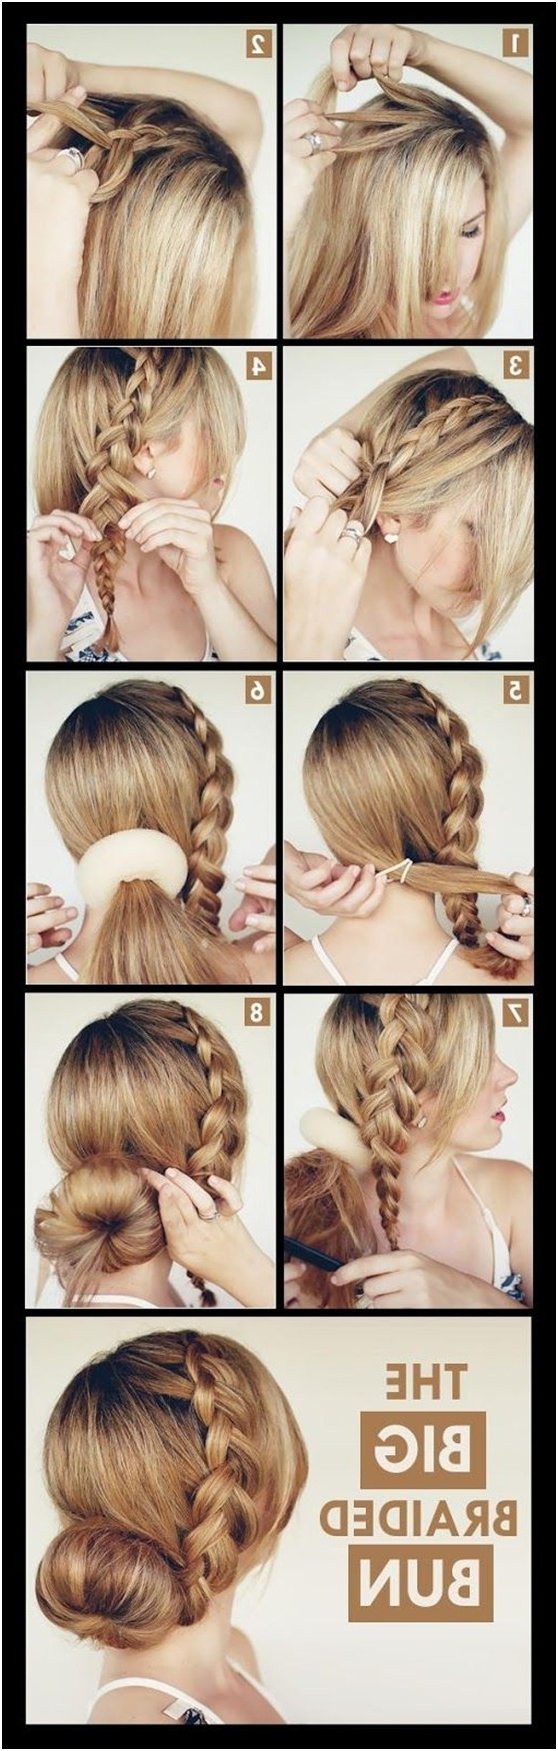 Fashionable Braided Chignon Prom Hairstyles In 15 Braided Updo Hairstyles Tutorials – Pretty Designs (View 10 of 20)